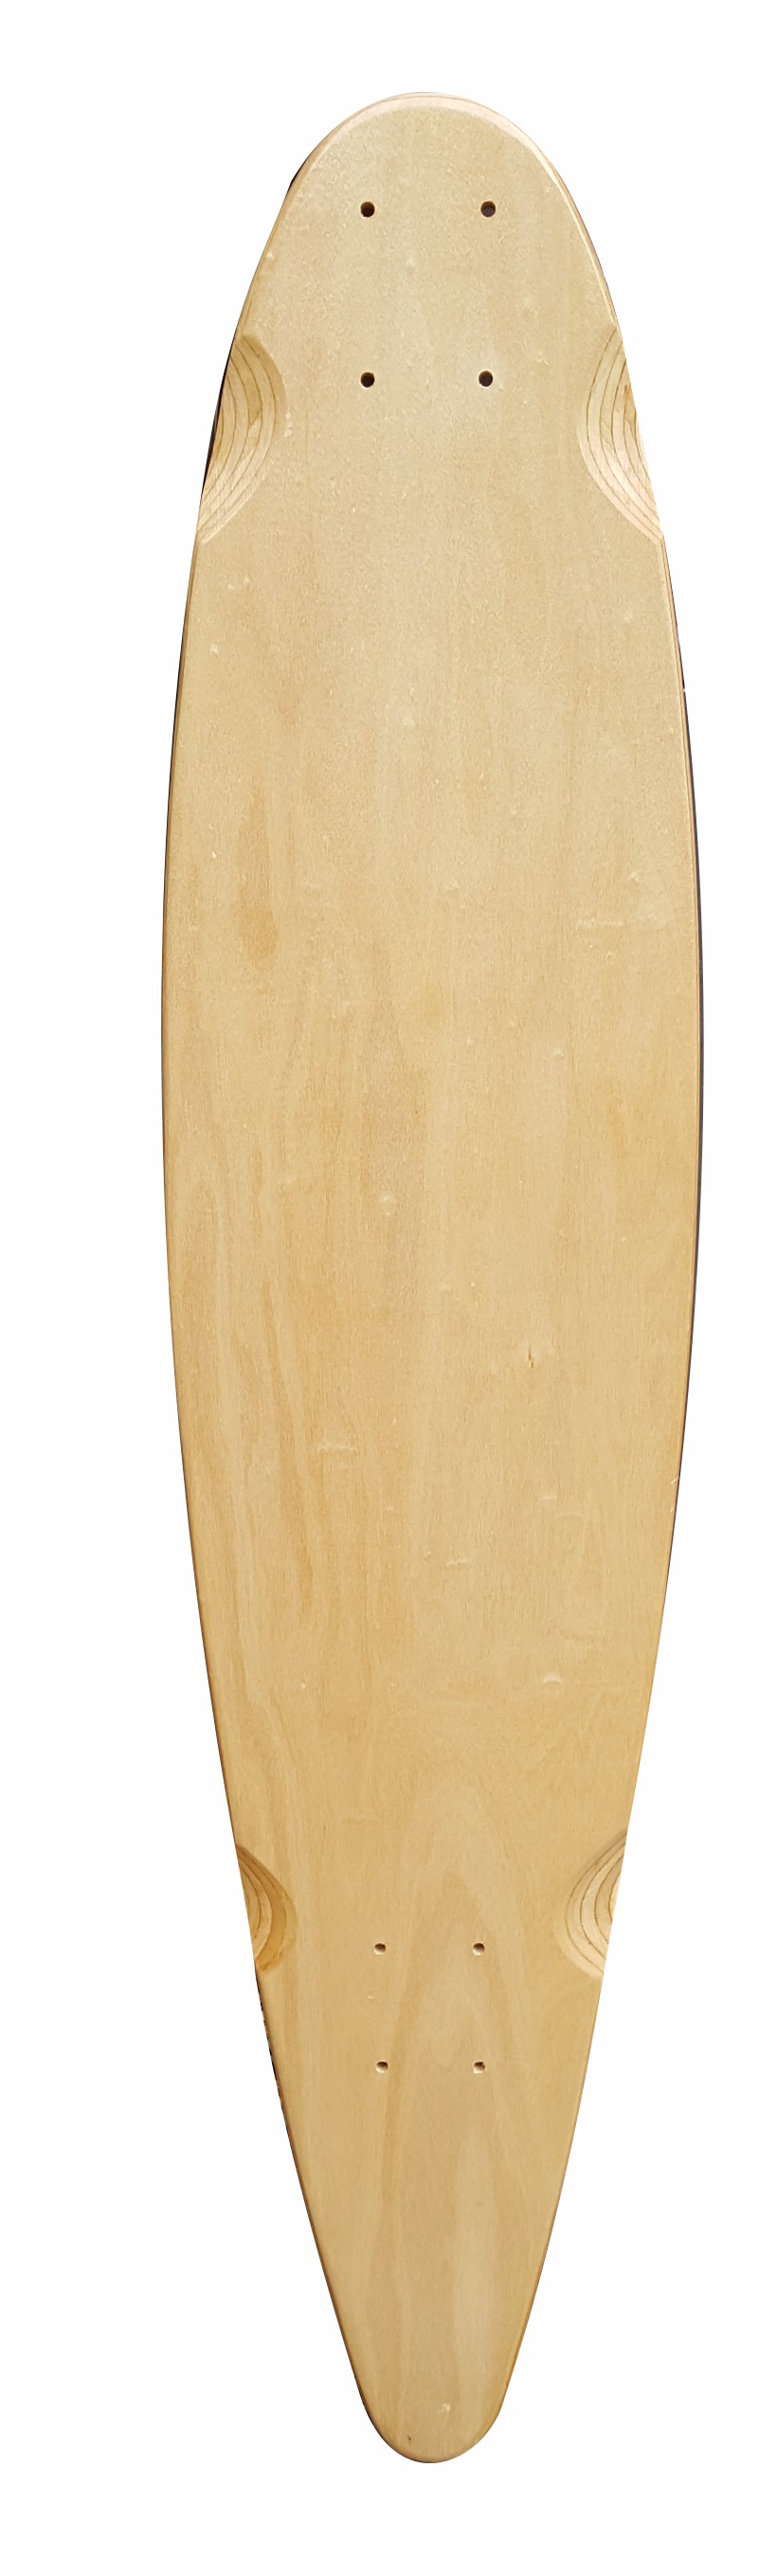 Promo Longboard Decks (Bottom)